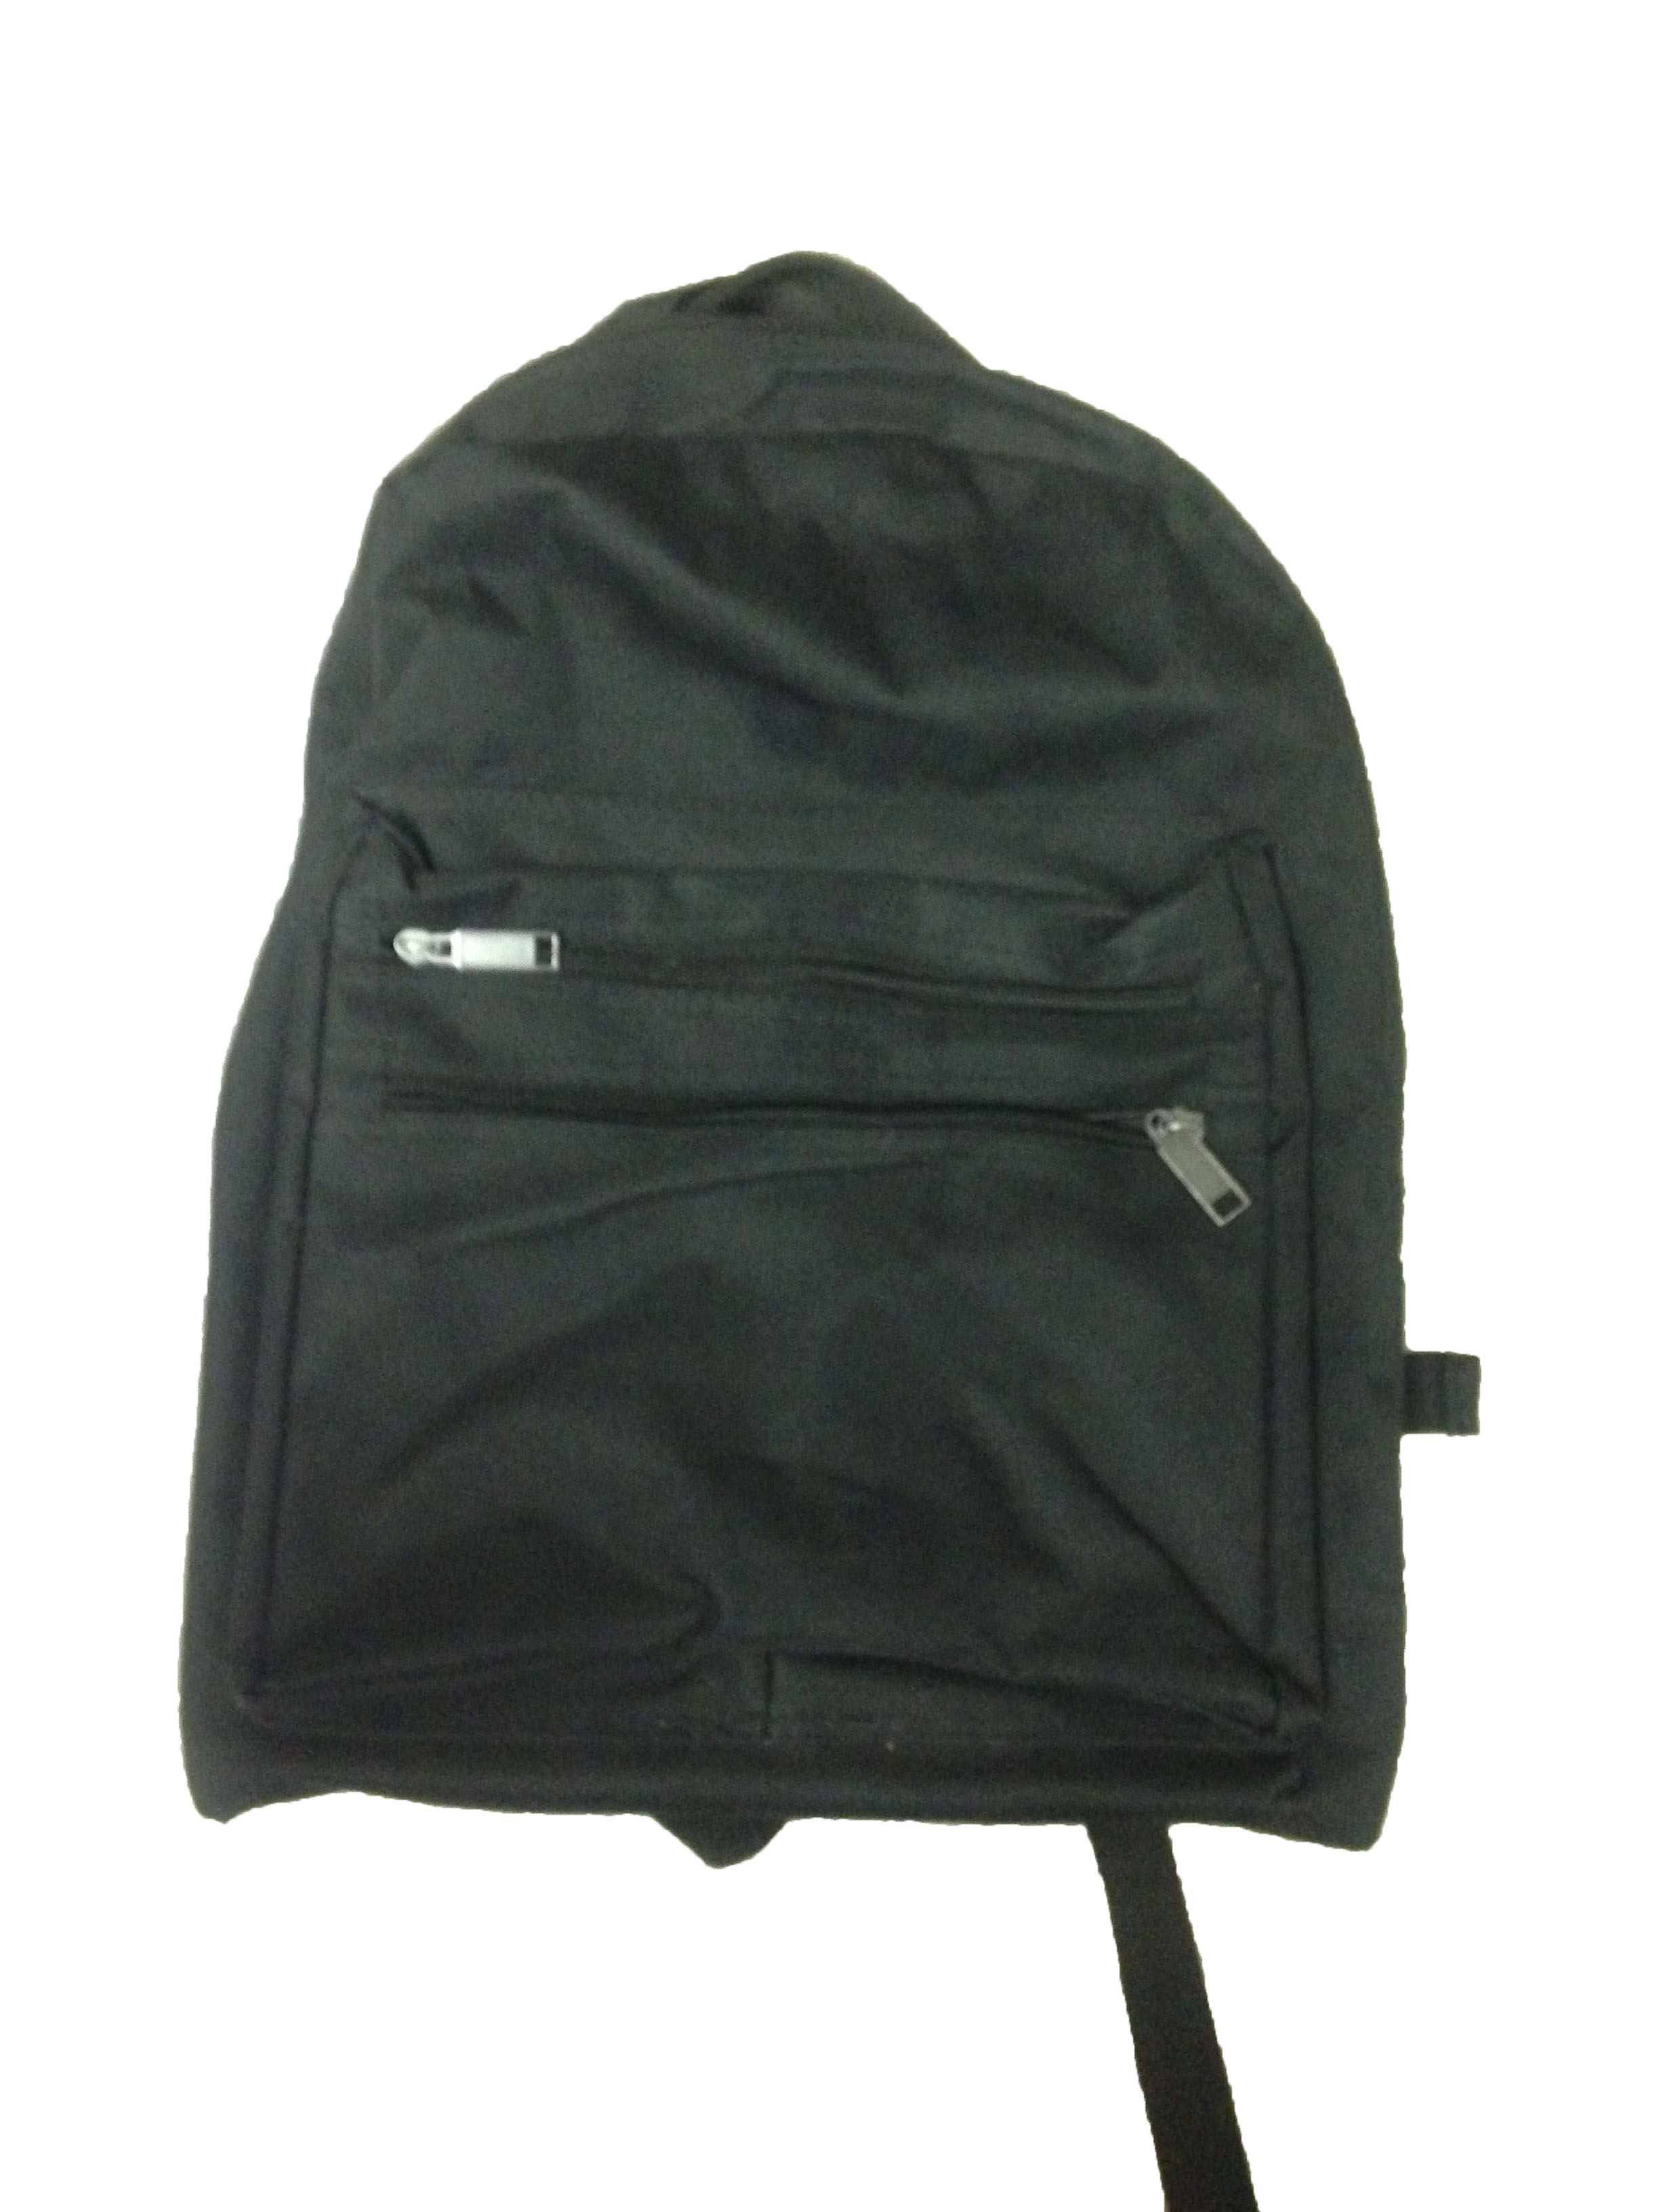 Backpack (Black) image